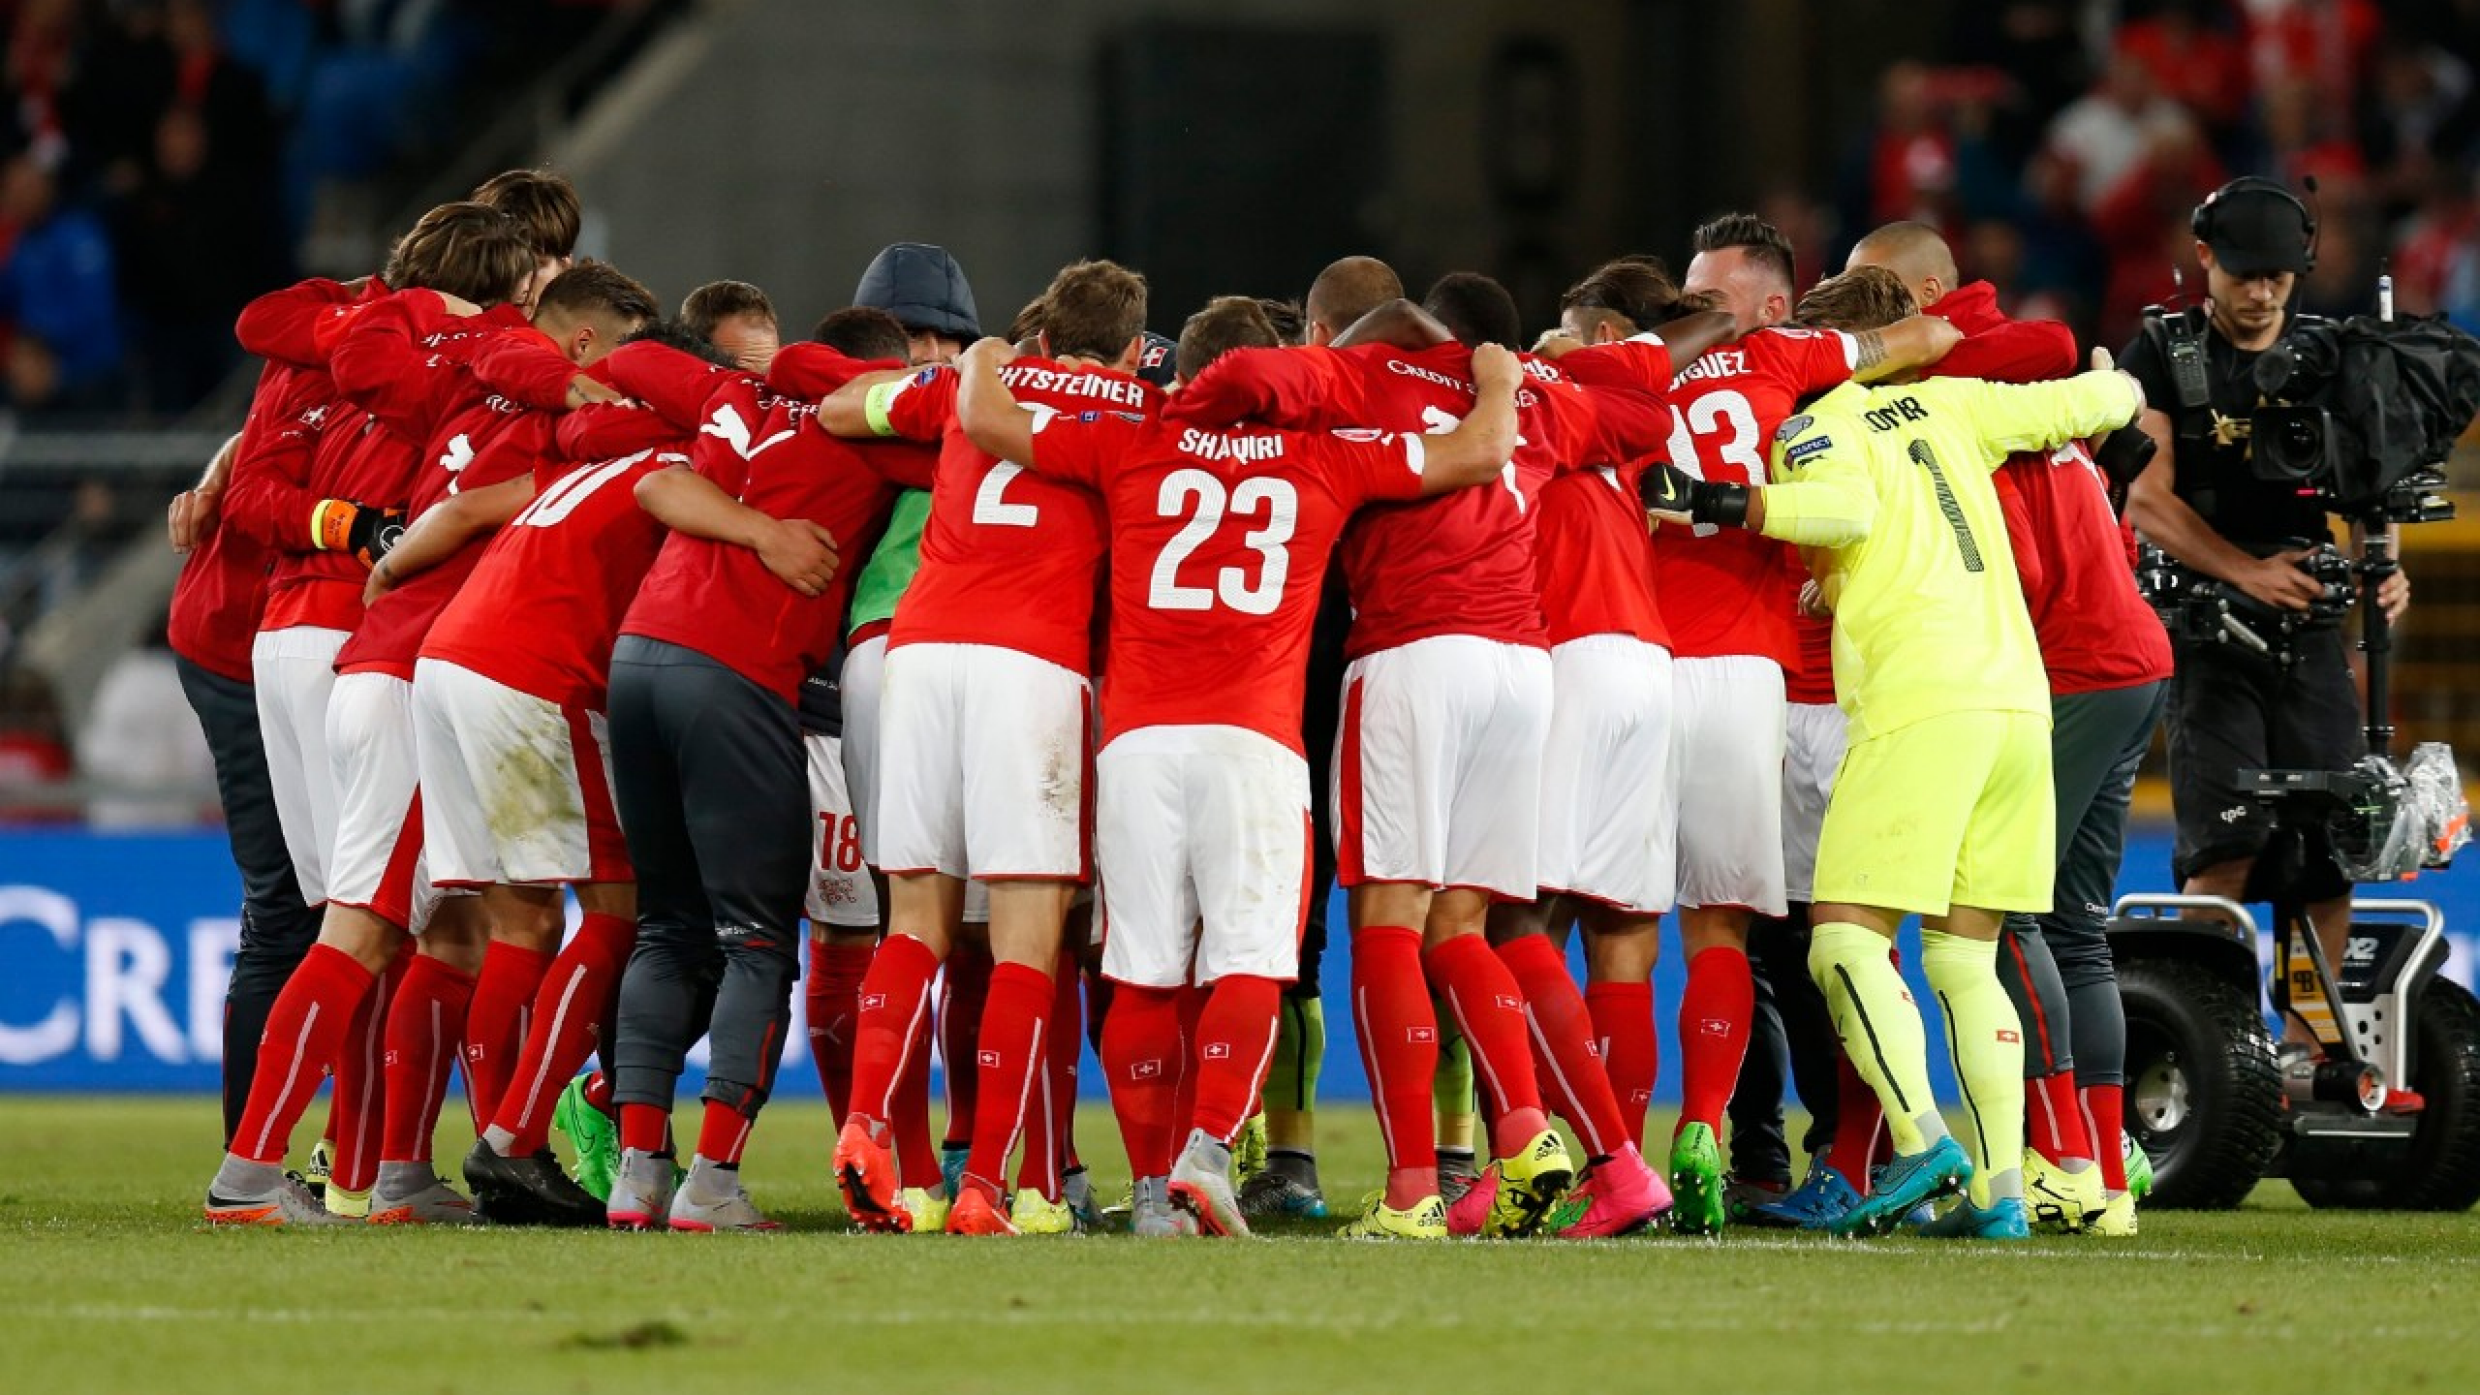 epa04915733 Switzerland's players celebrate their victory after the UEFA EURO 2016 qualifying soccer match between Switzerland and Slovenia at the St. Jakob-Park stadium in Basel, Switzerland, Saturday, September 5, 2015.  EPA/PETER KLAUNZER